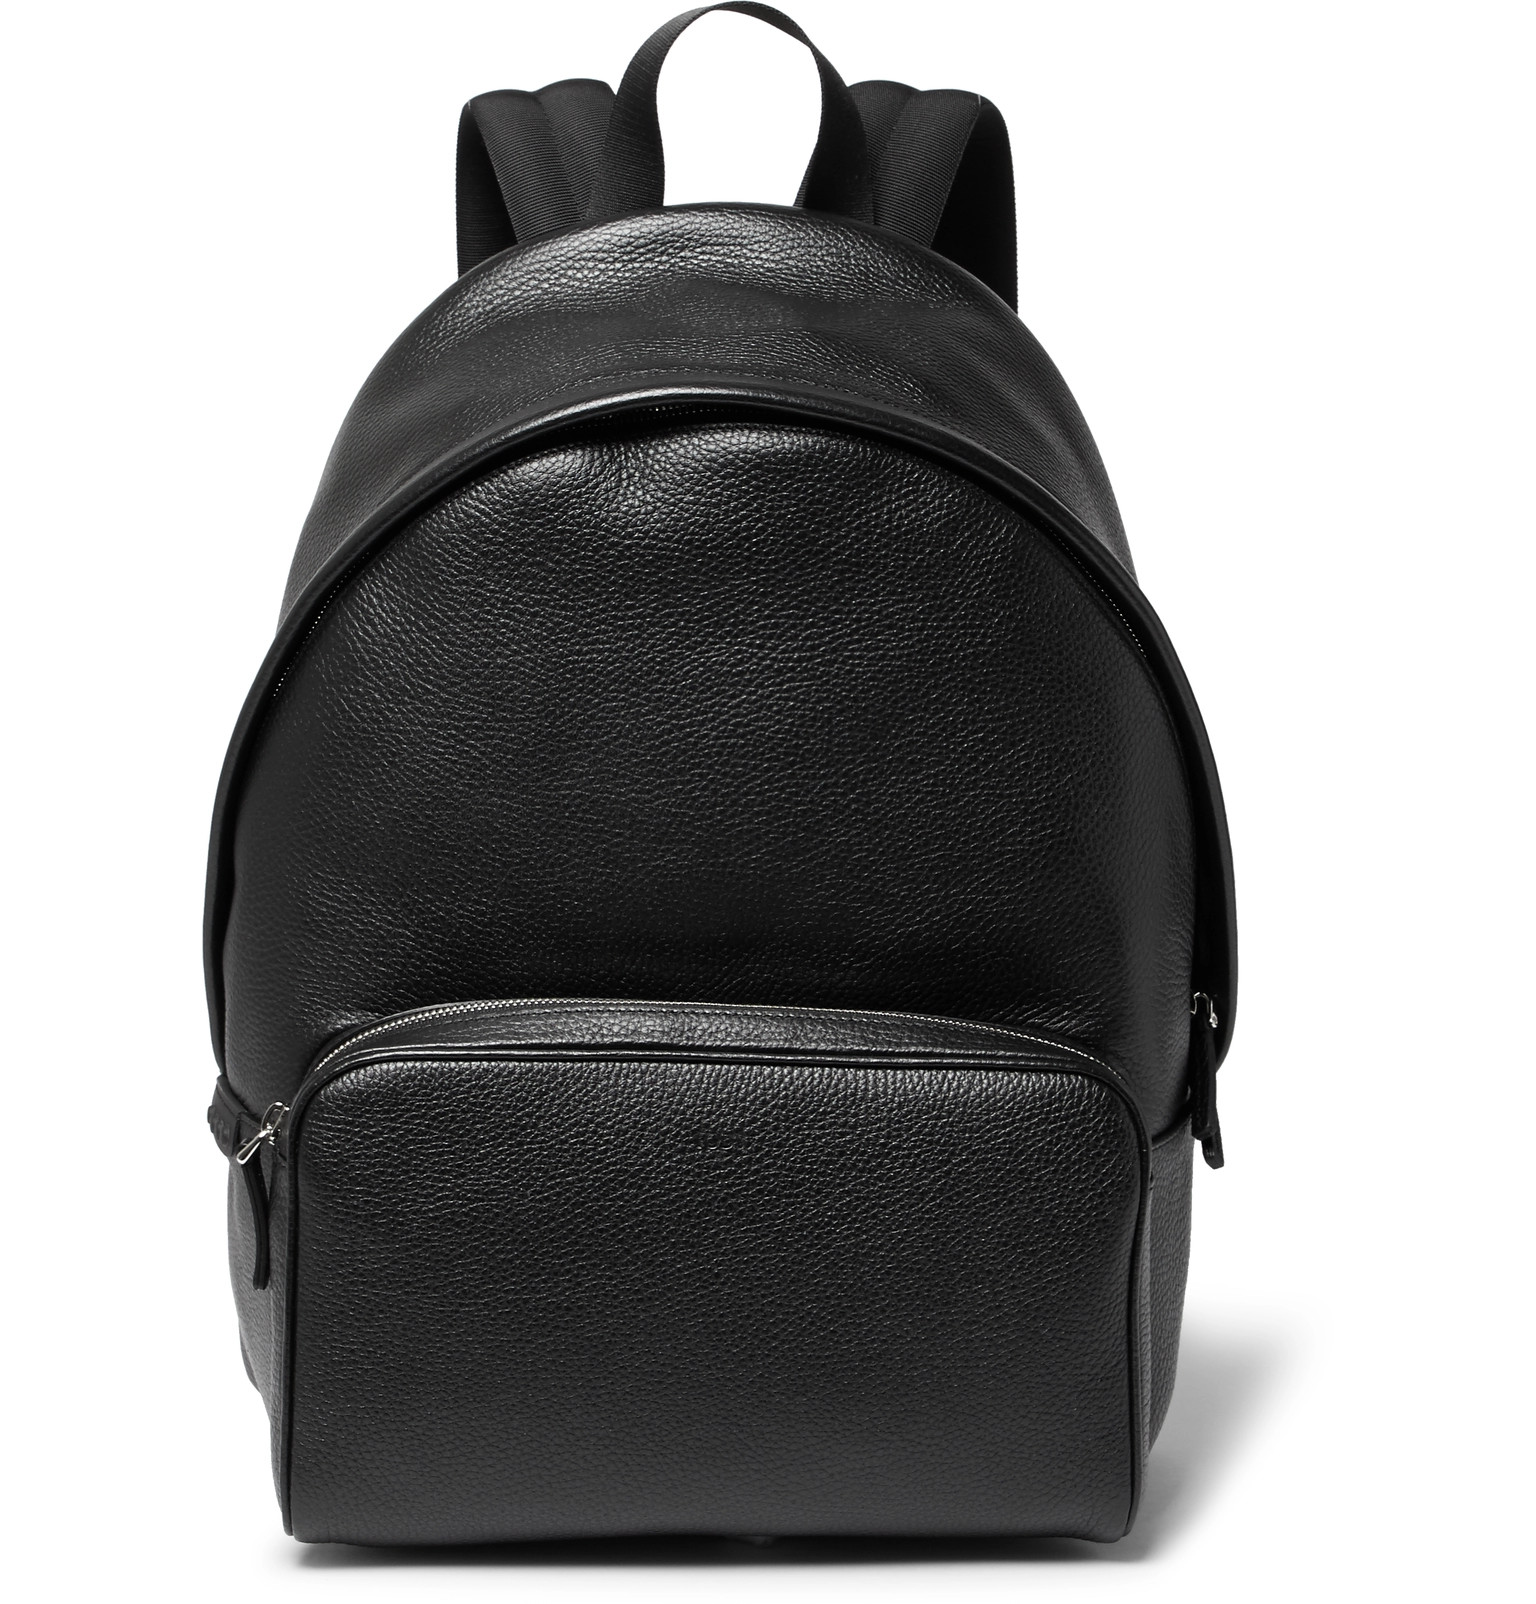 Men's Designer Backpacks - Shop Men's Fashion Online at MR PORTER